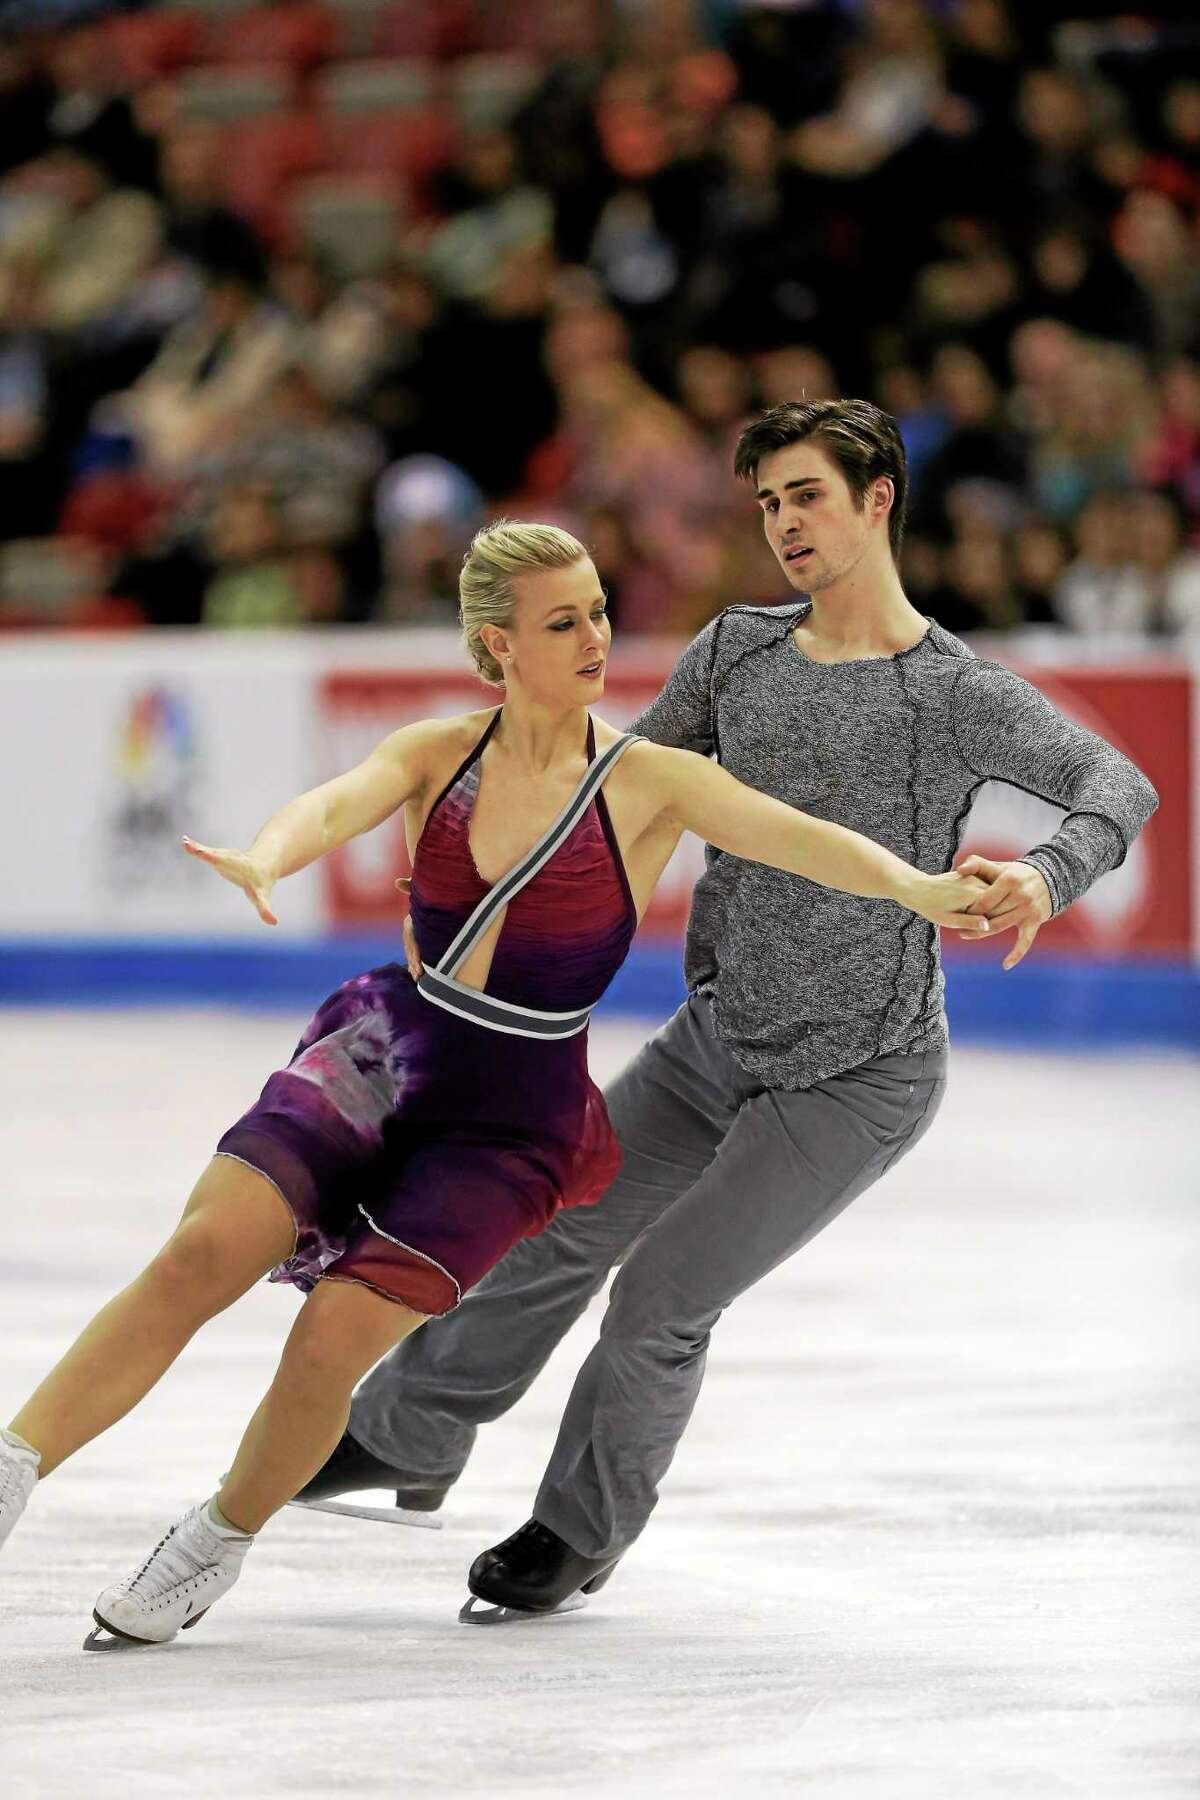 Madison Hubbell and Zachary Donohue compete in the ice dance free dance routine at the Skate America figure skating competition in 2013.